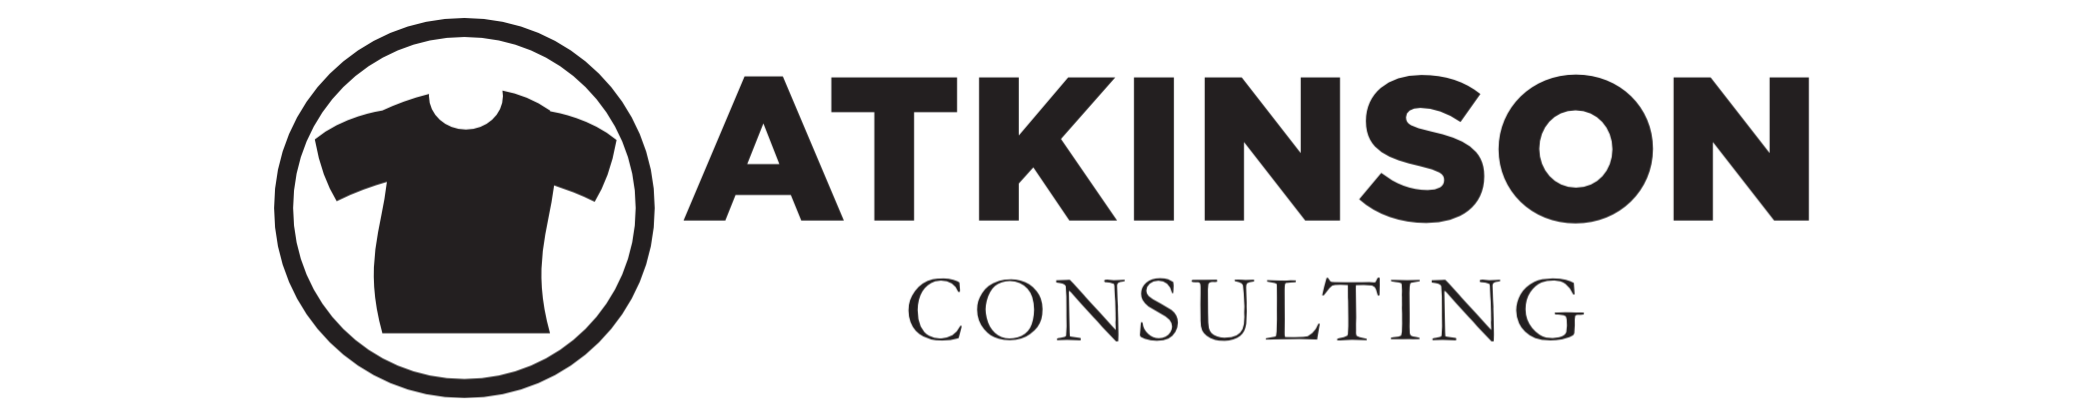 ATKINSON CONSULTING 500X100.png